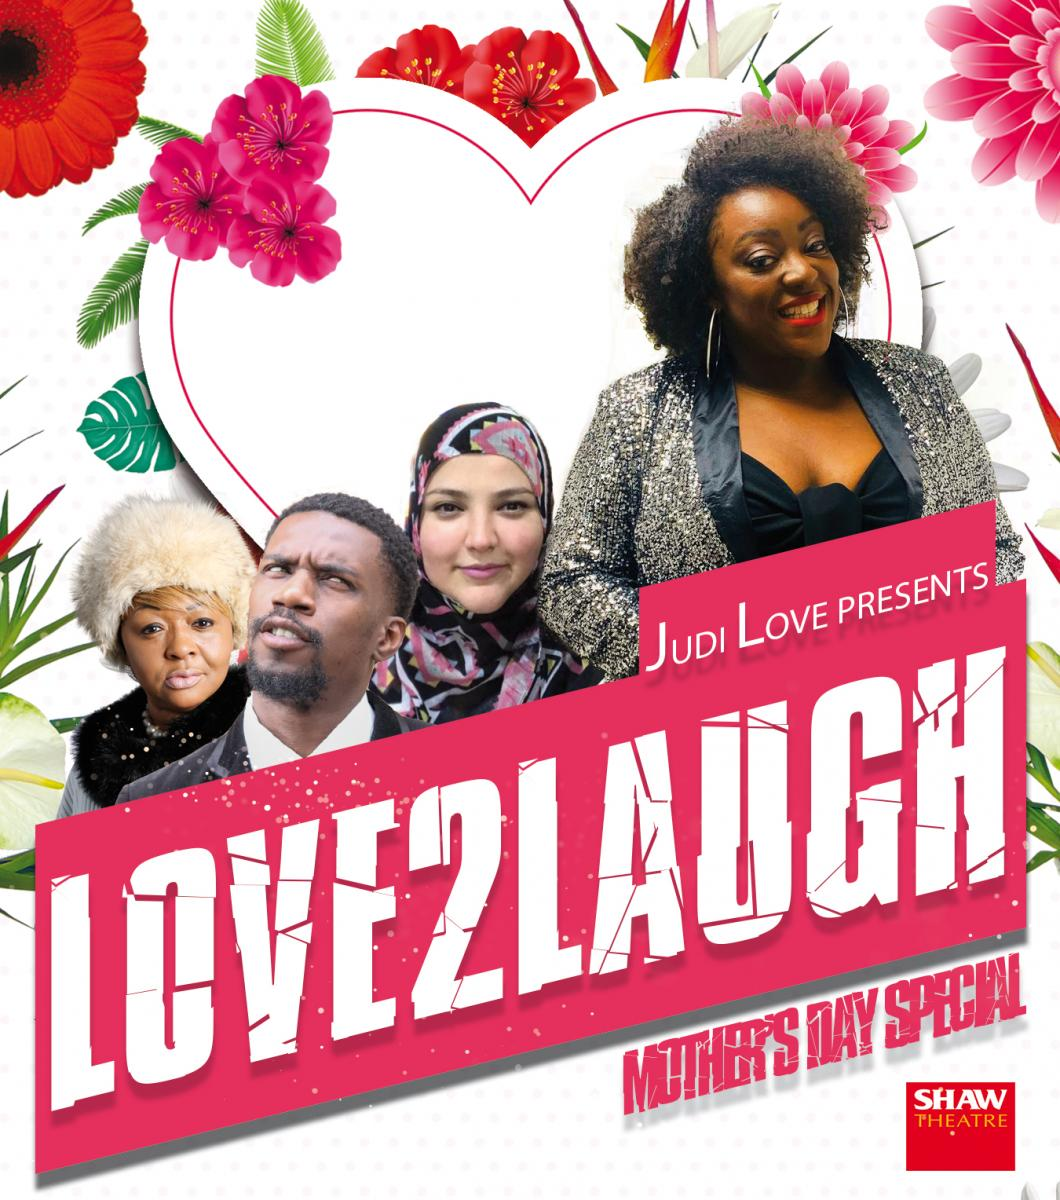 Judi Love Love2laugh Mothers Day Special